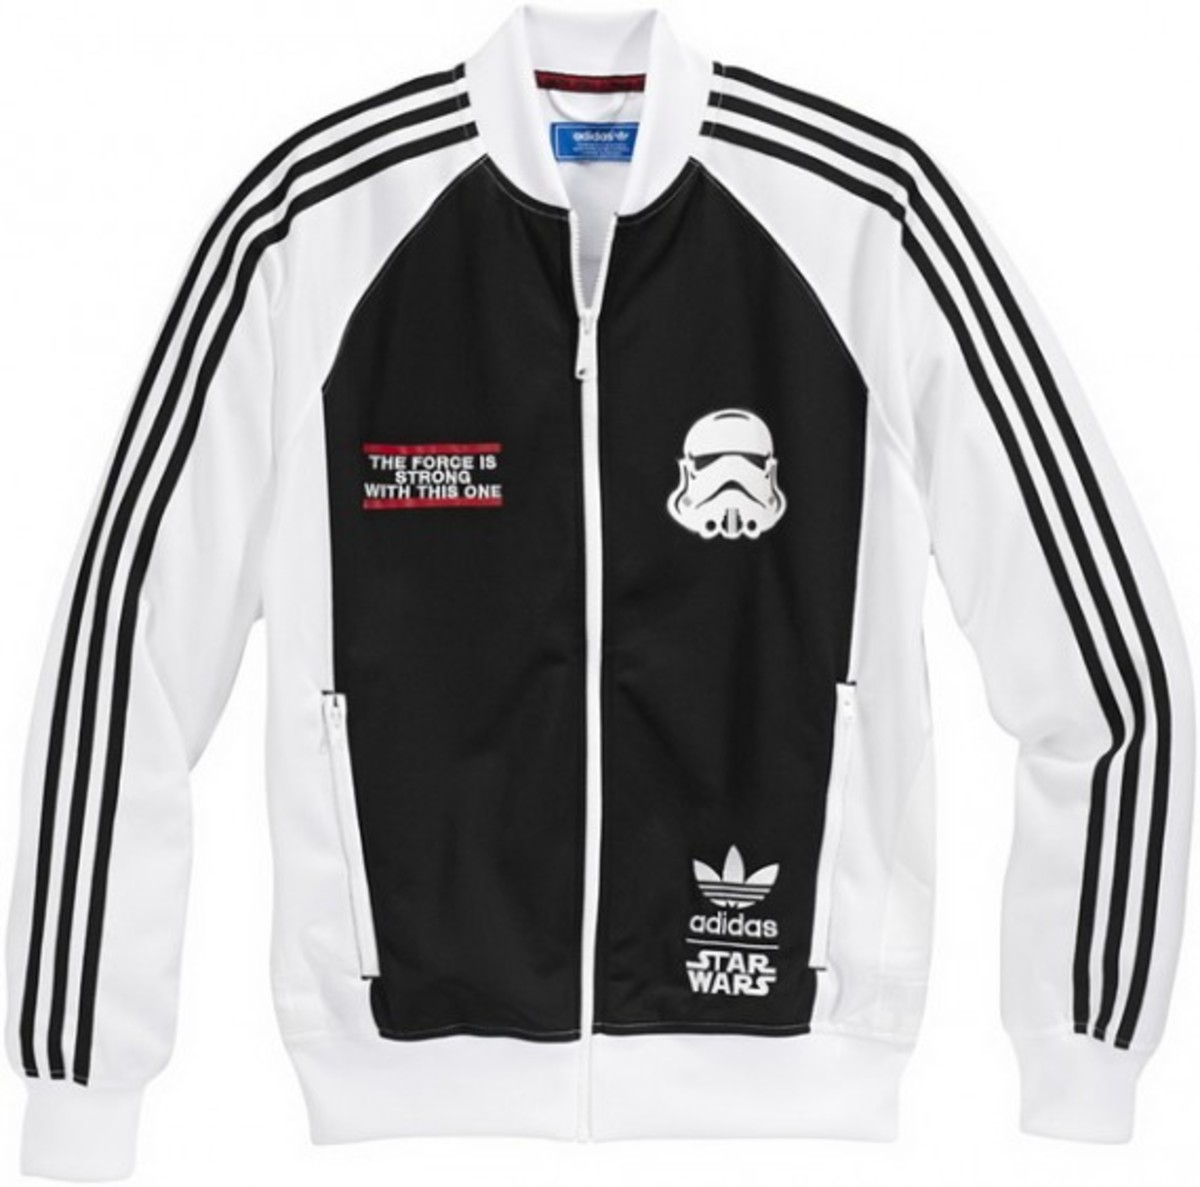 star-wars-adidas-originals-2011-apparel-30